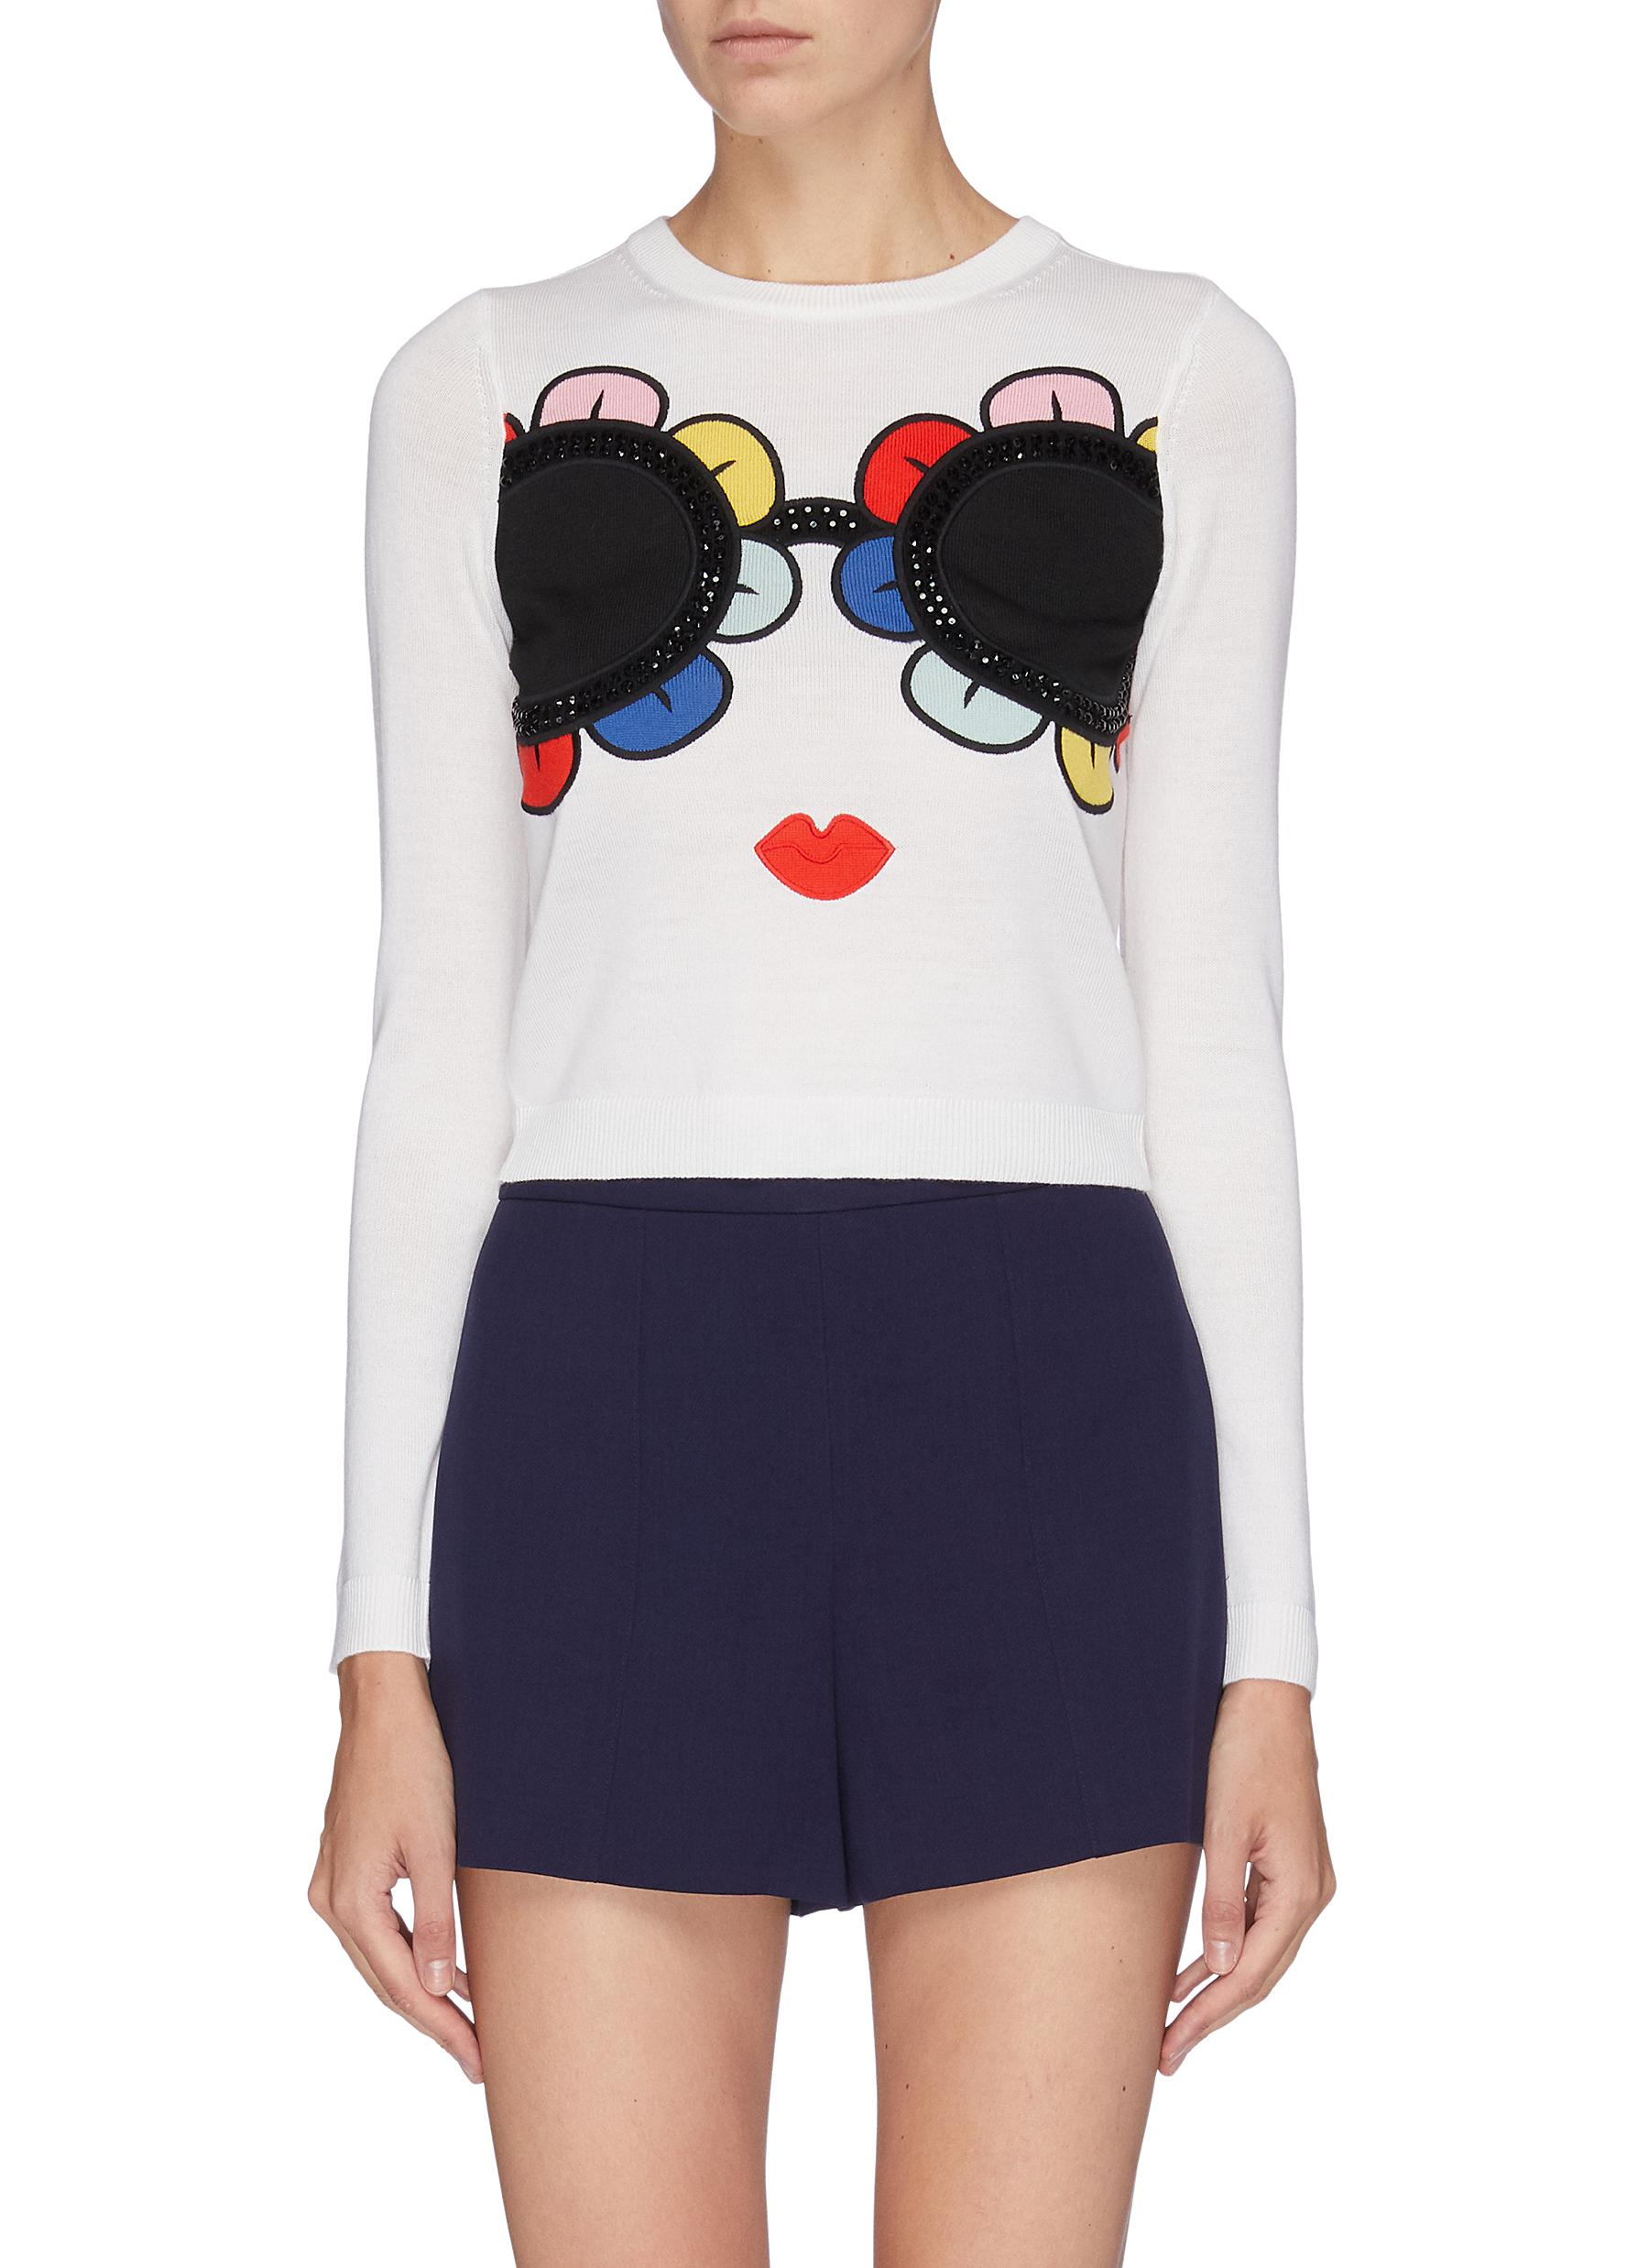 Connie Stacey embellished sweater by Alice + Olivia